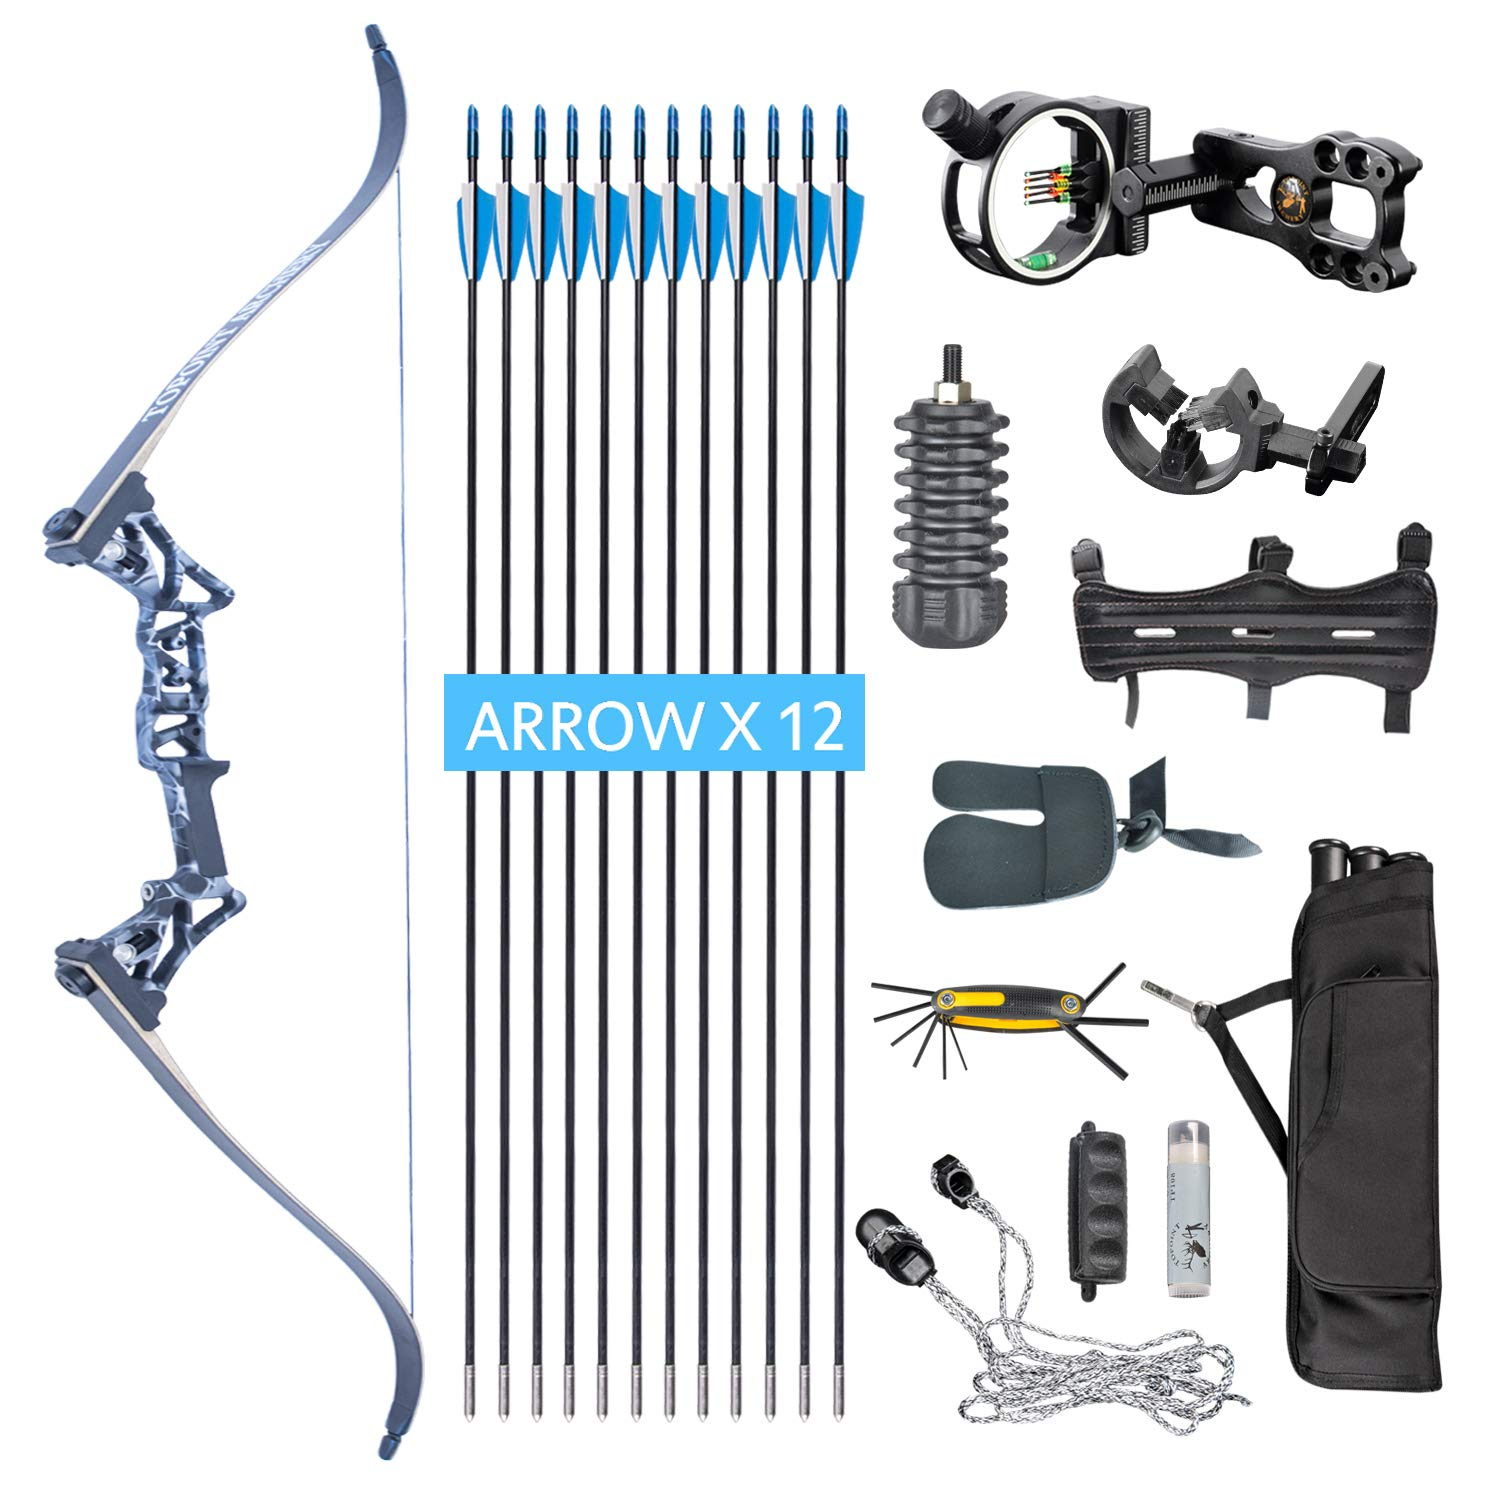 XQMART XGeek Archery Takedown Recurve Bow Package R3 Ready To Shoot Archery Set For Bow (camouflage, Draw Length-40) (black2, Draw Weight :40) (Camouflage, Draw Weight:40)